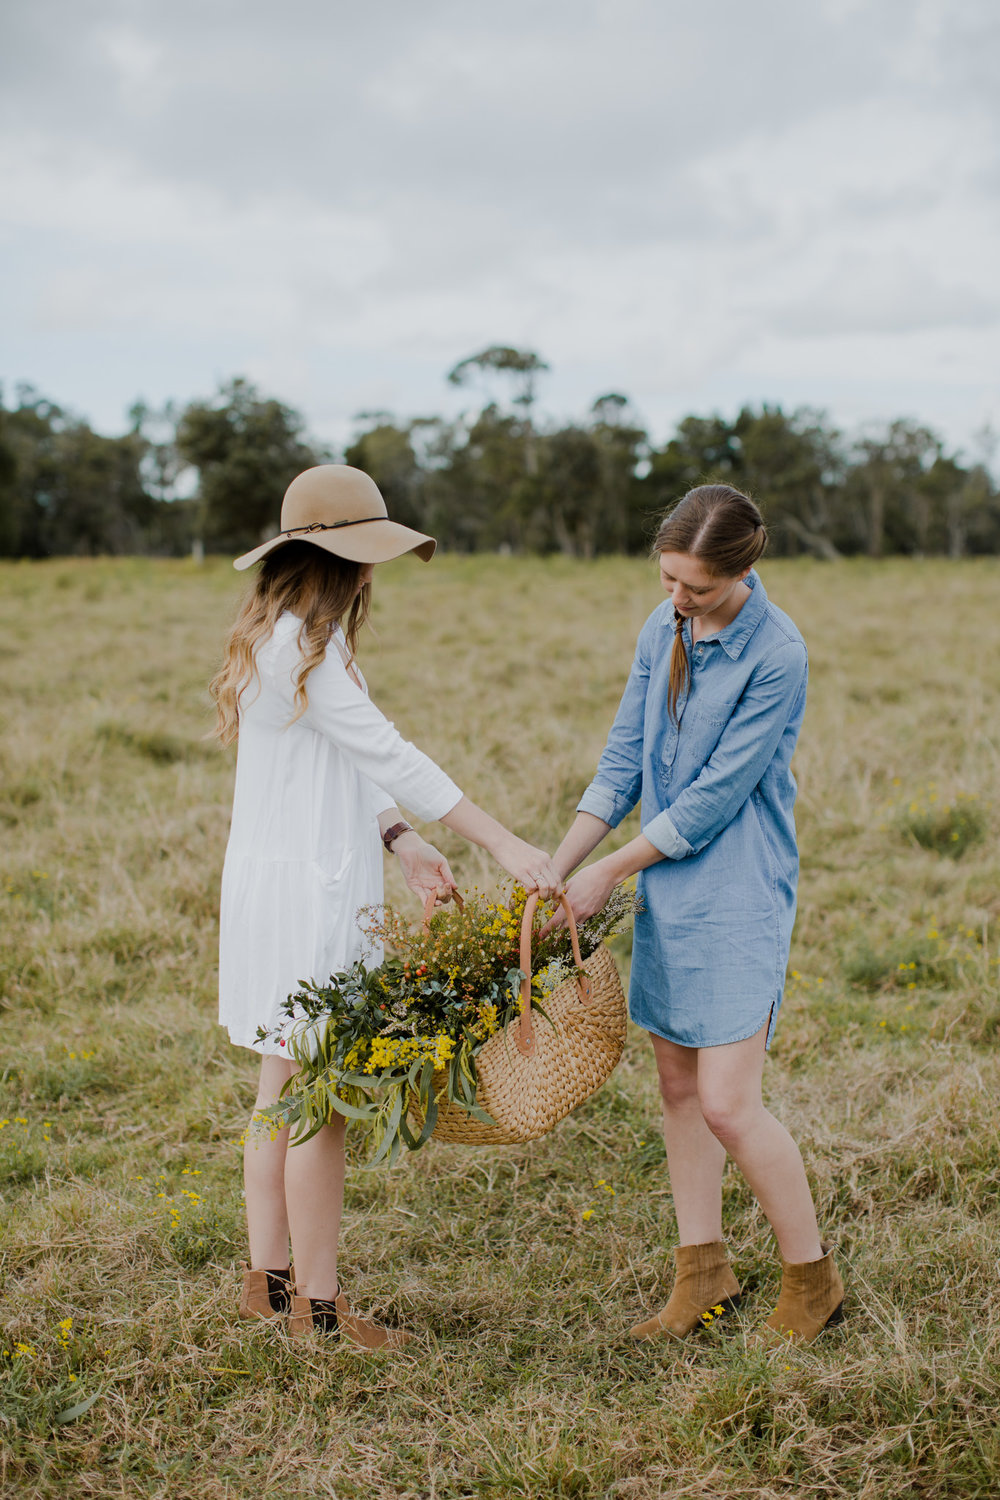 Lifestyle photography Brisbane | Tammie Joske